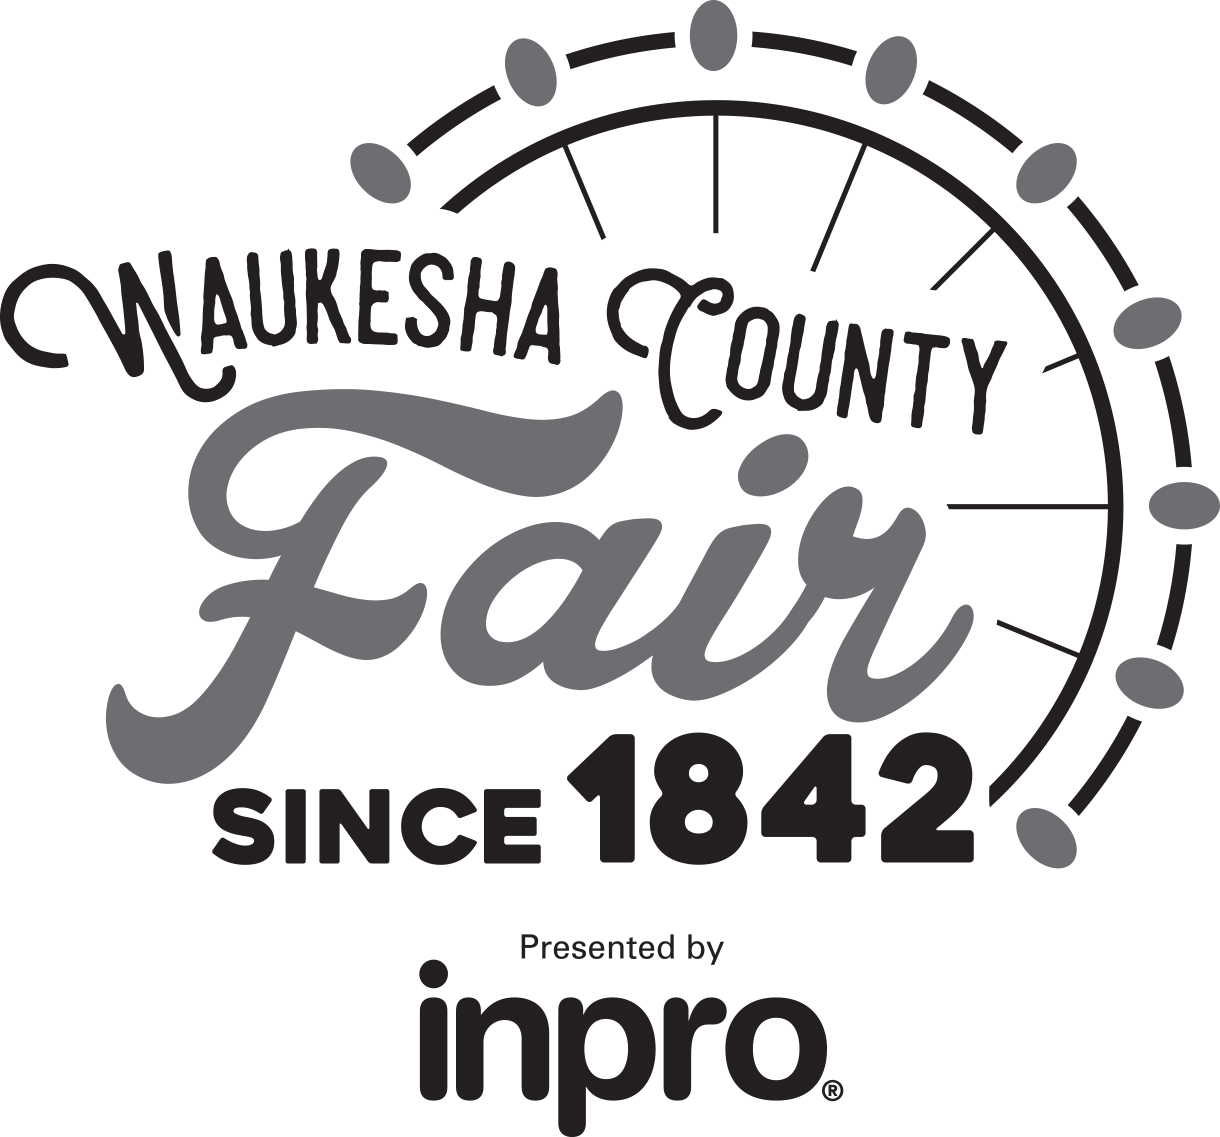 Waukesha County Fair 2018 Grayscale Logo